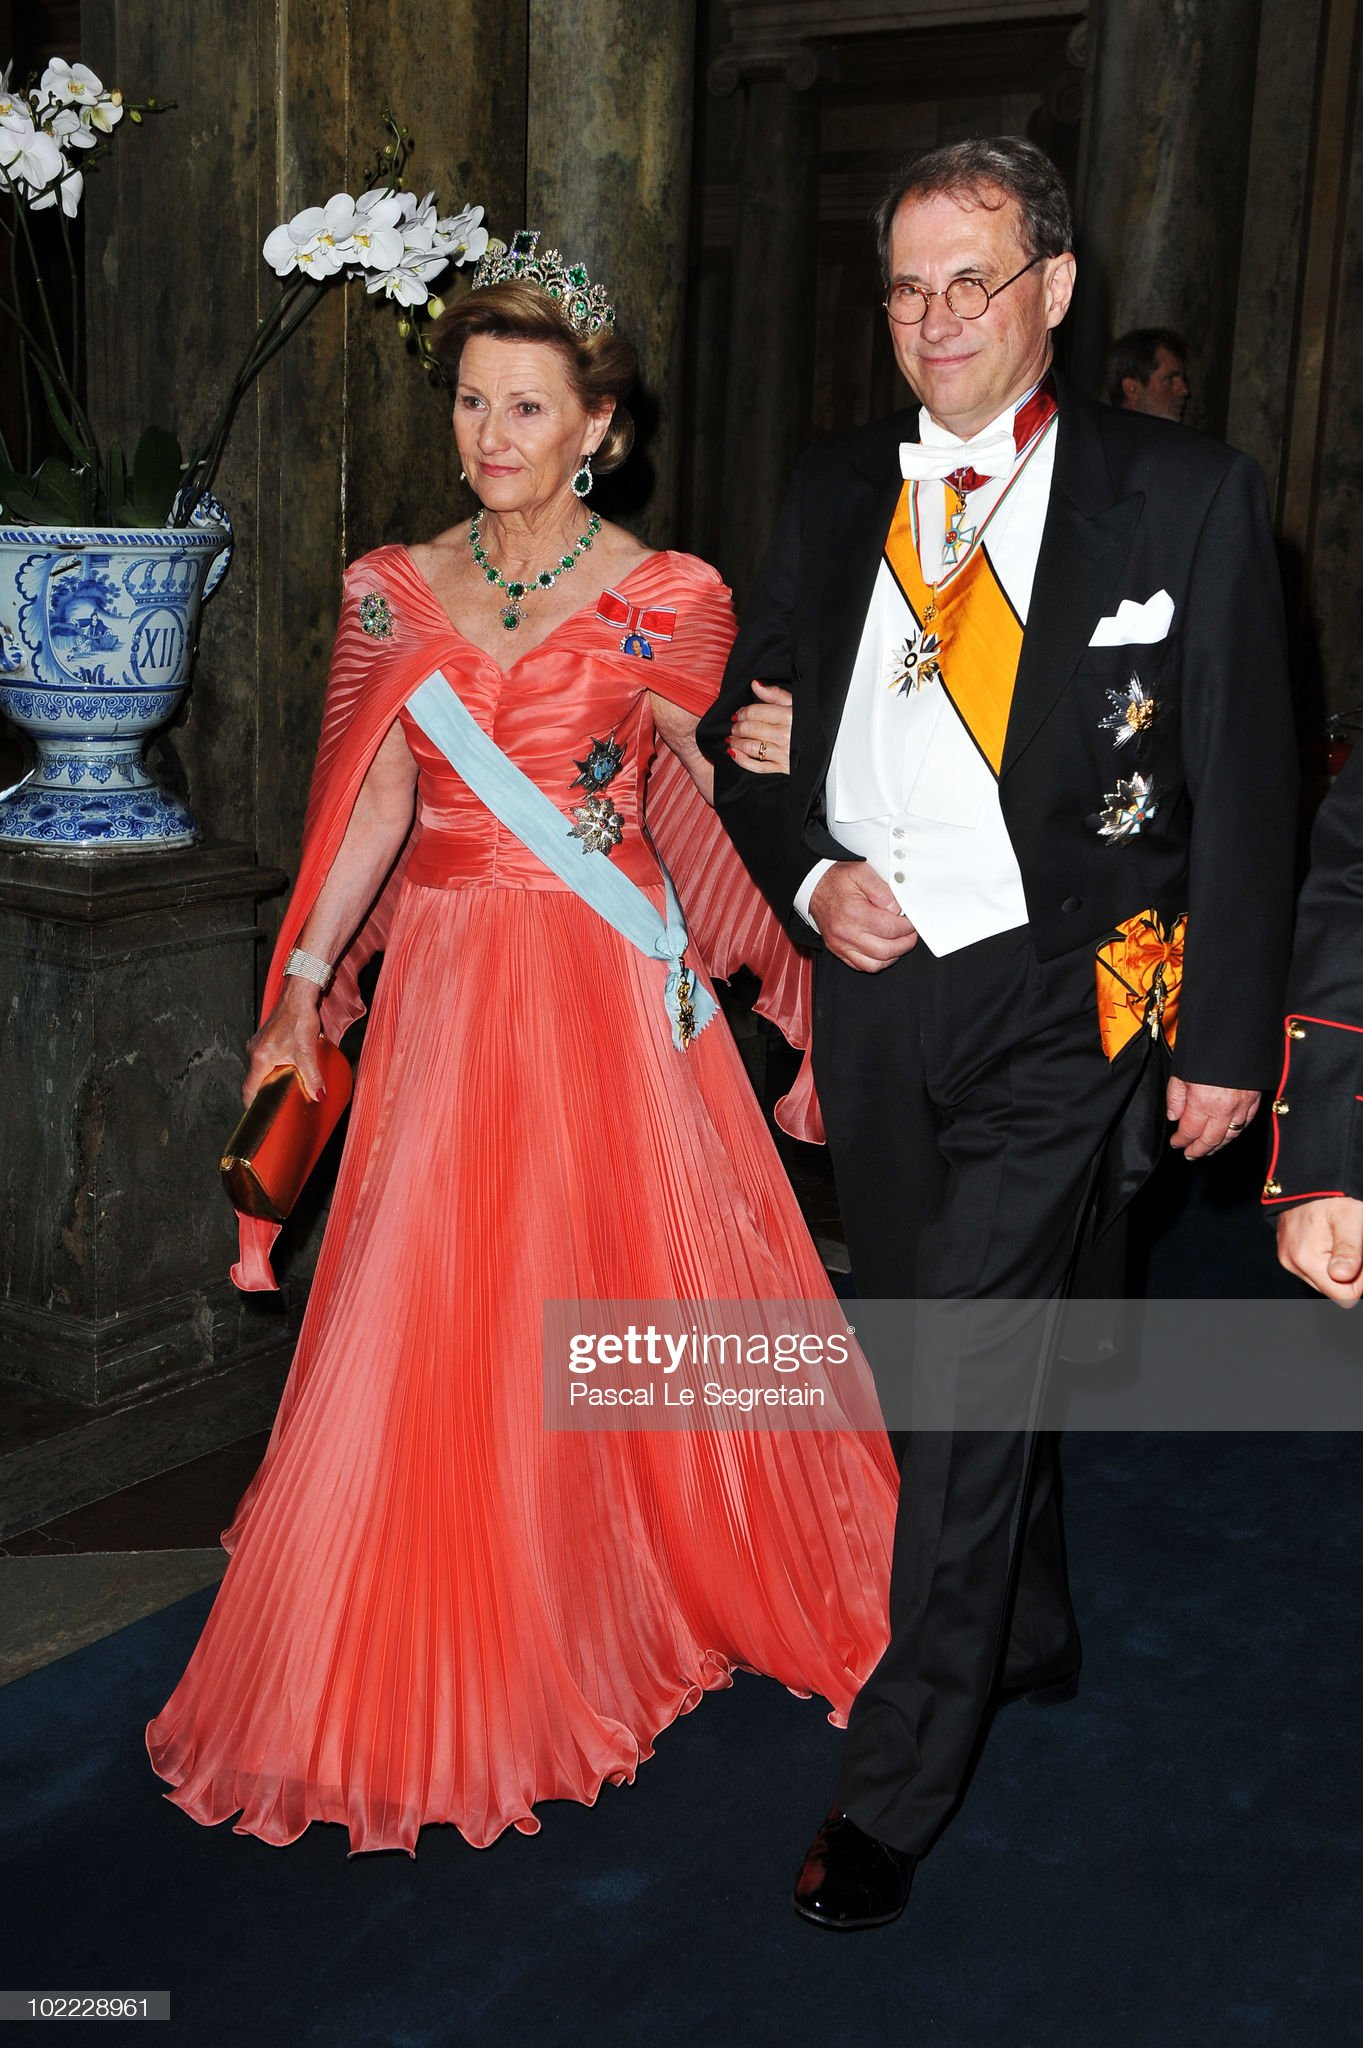 Wedding Of Swedish Crown Princess Victoria & Daniel Westling: Banquet - Inside : News Photo